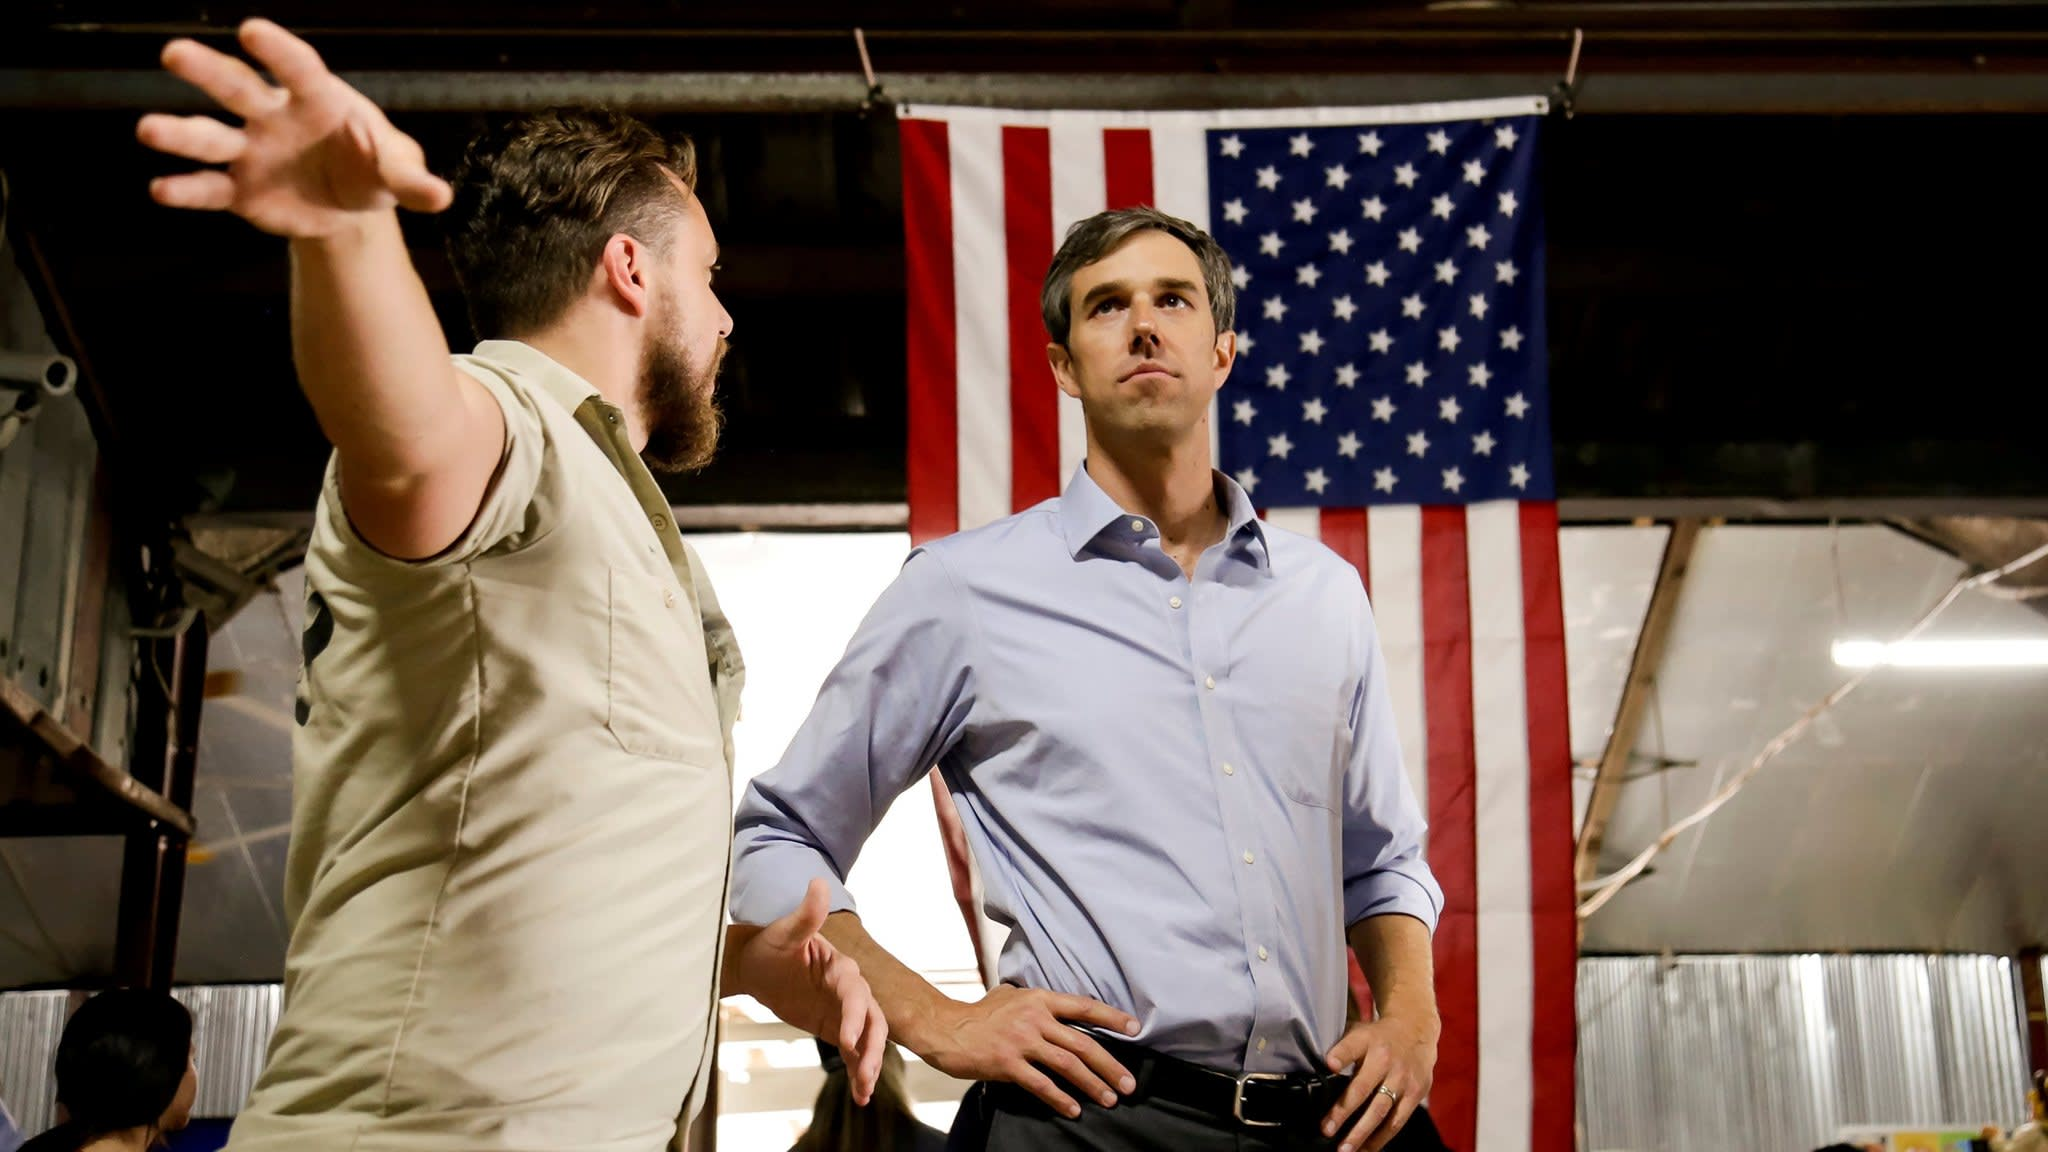 Beto O'Rourke electrifies voters as he takes on Ted Cruz in Texas